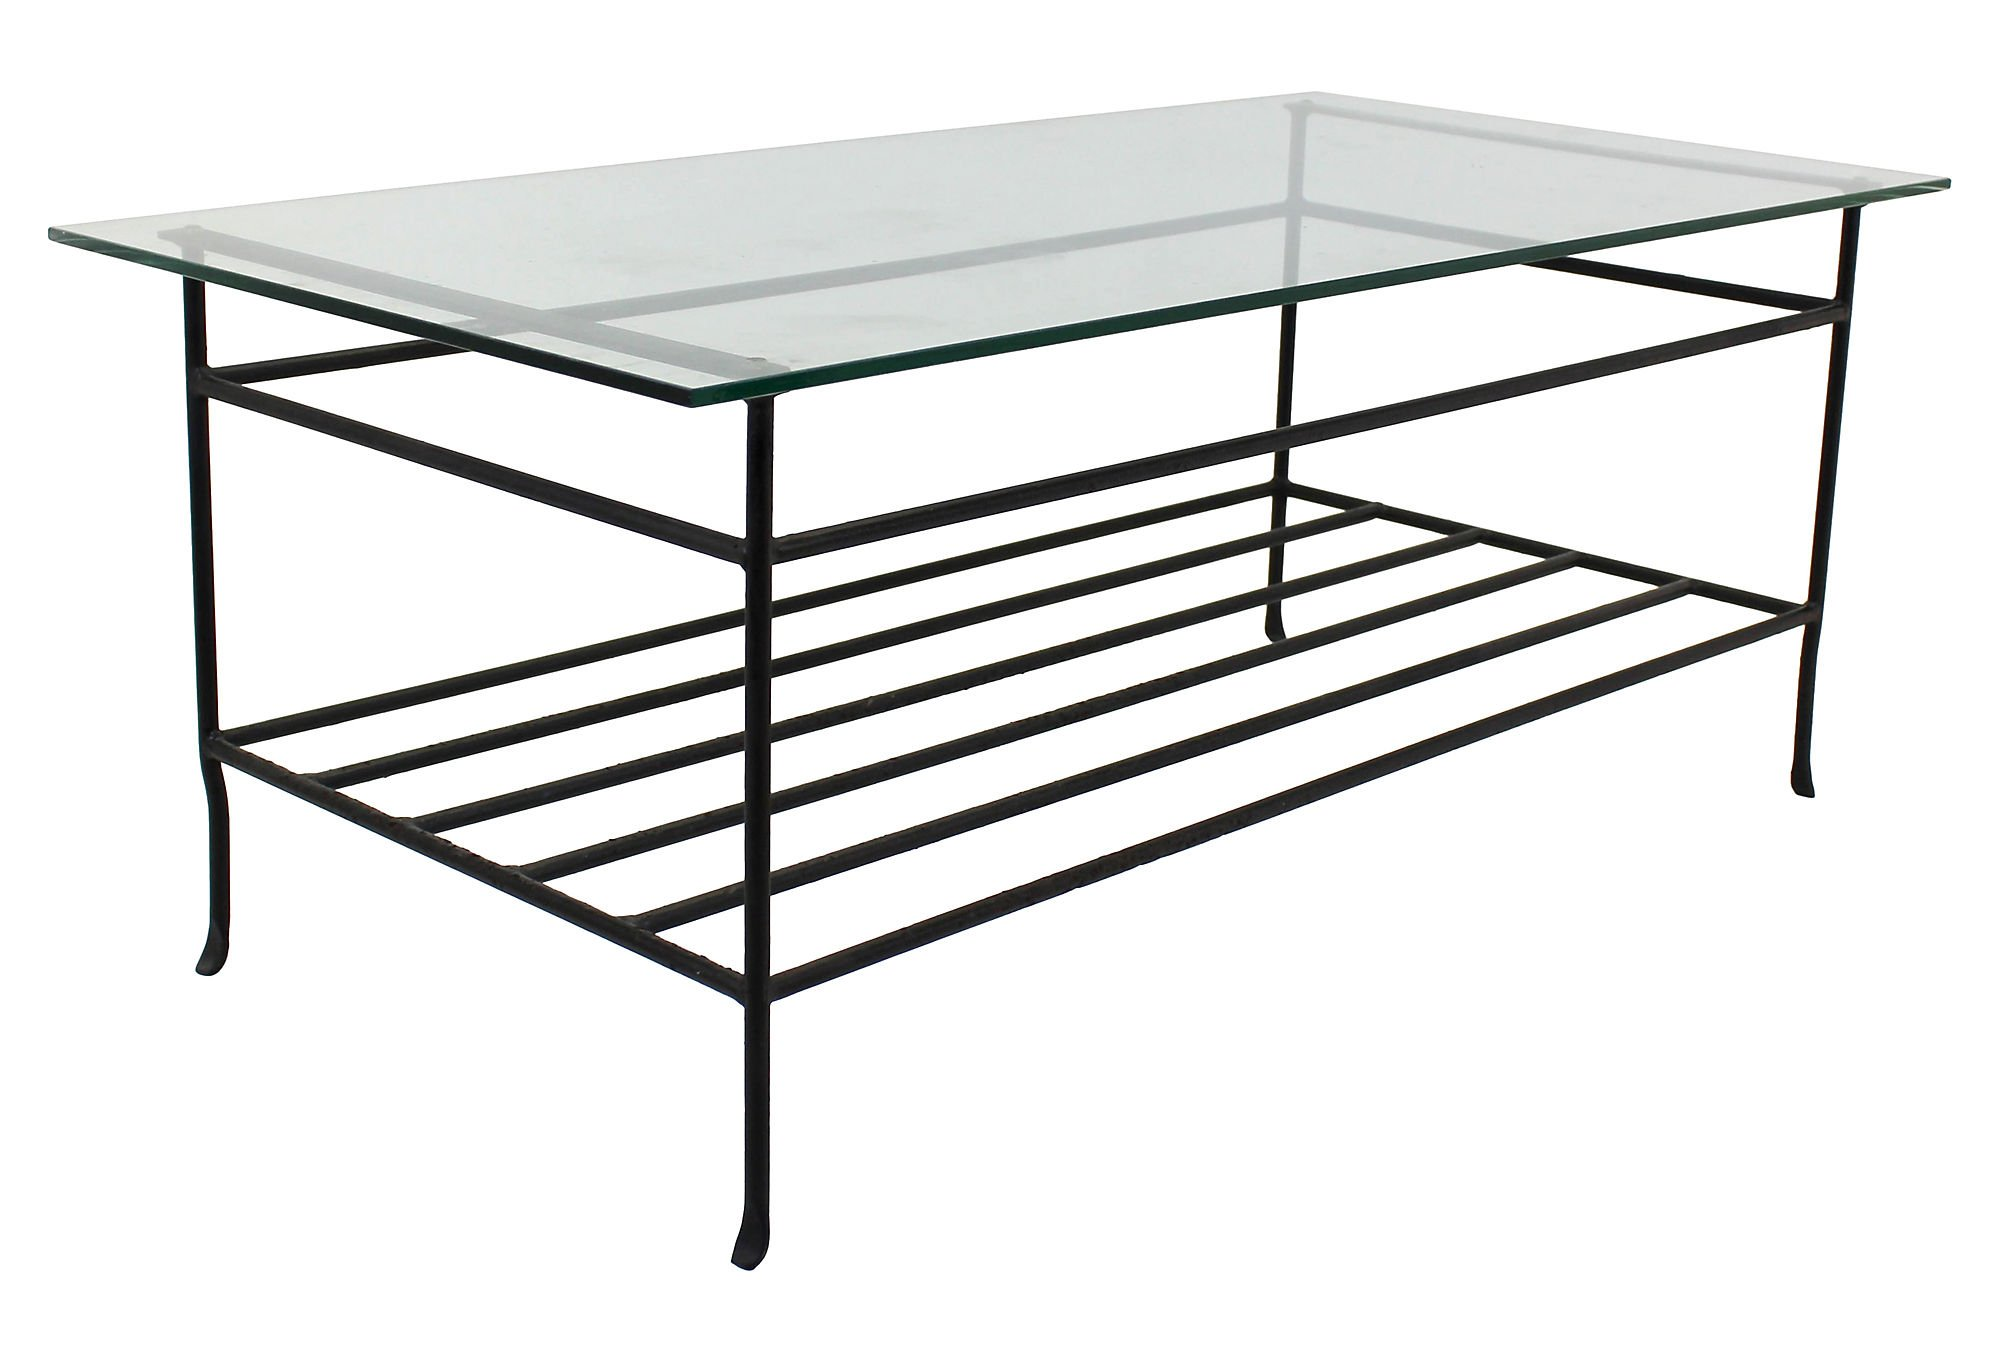 Janelle Coffee Table by Wayfair